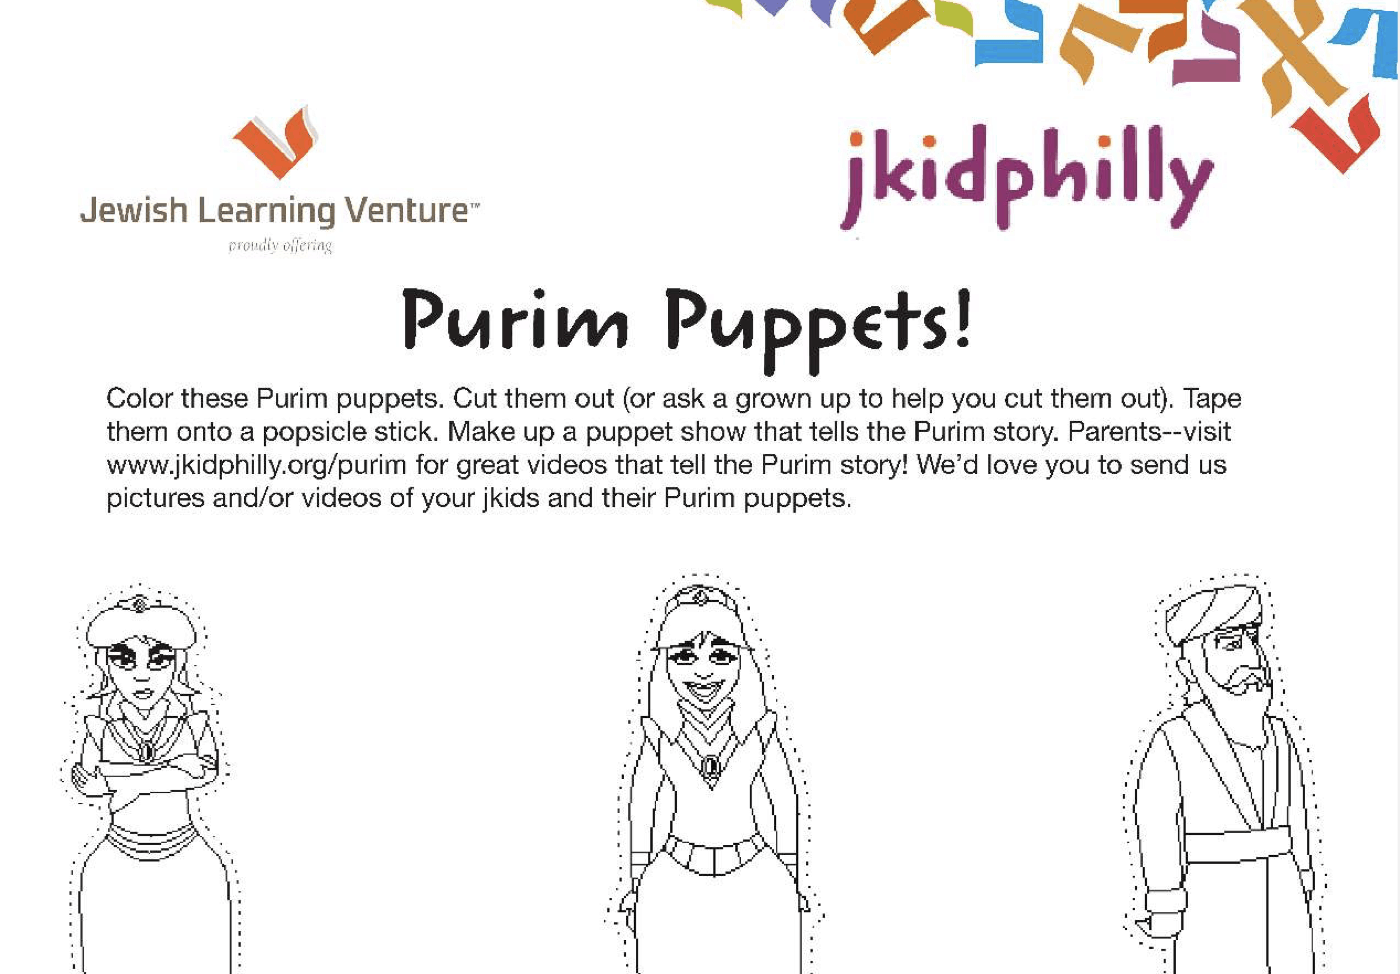 A coloring page for coloring in the Purim Puppets! Color the Purim Puppets. Cut them out (or ask a grown up to help you cut them out.) Tape them onto a Popsicle stick. Make up a puppet show that tells the Purim story. Parents - visit www.jkidphilly.org/purim for great videos that tell the Purim story! We'd love you to send us pictures and/or videos of your kids and their Purim puppets.